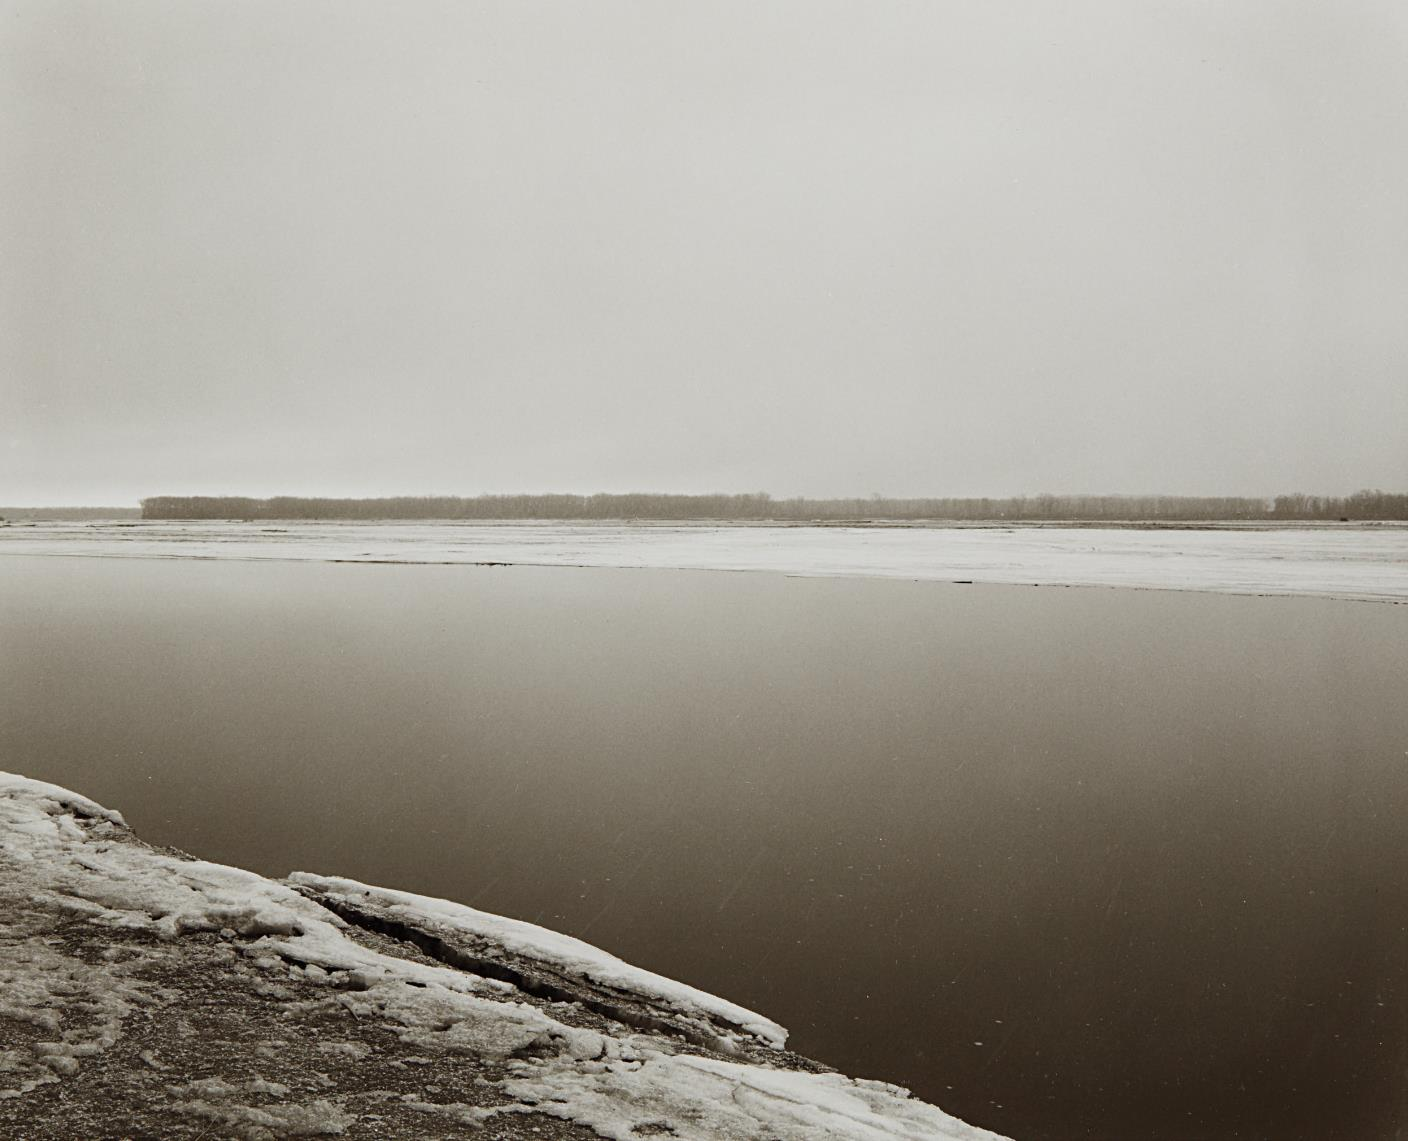 Robert Adams-Concrete And Ice, Missouri River, Clay County, South Dakota-1977